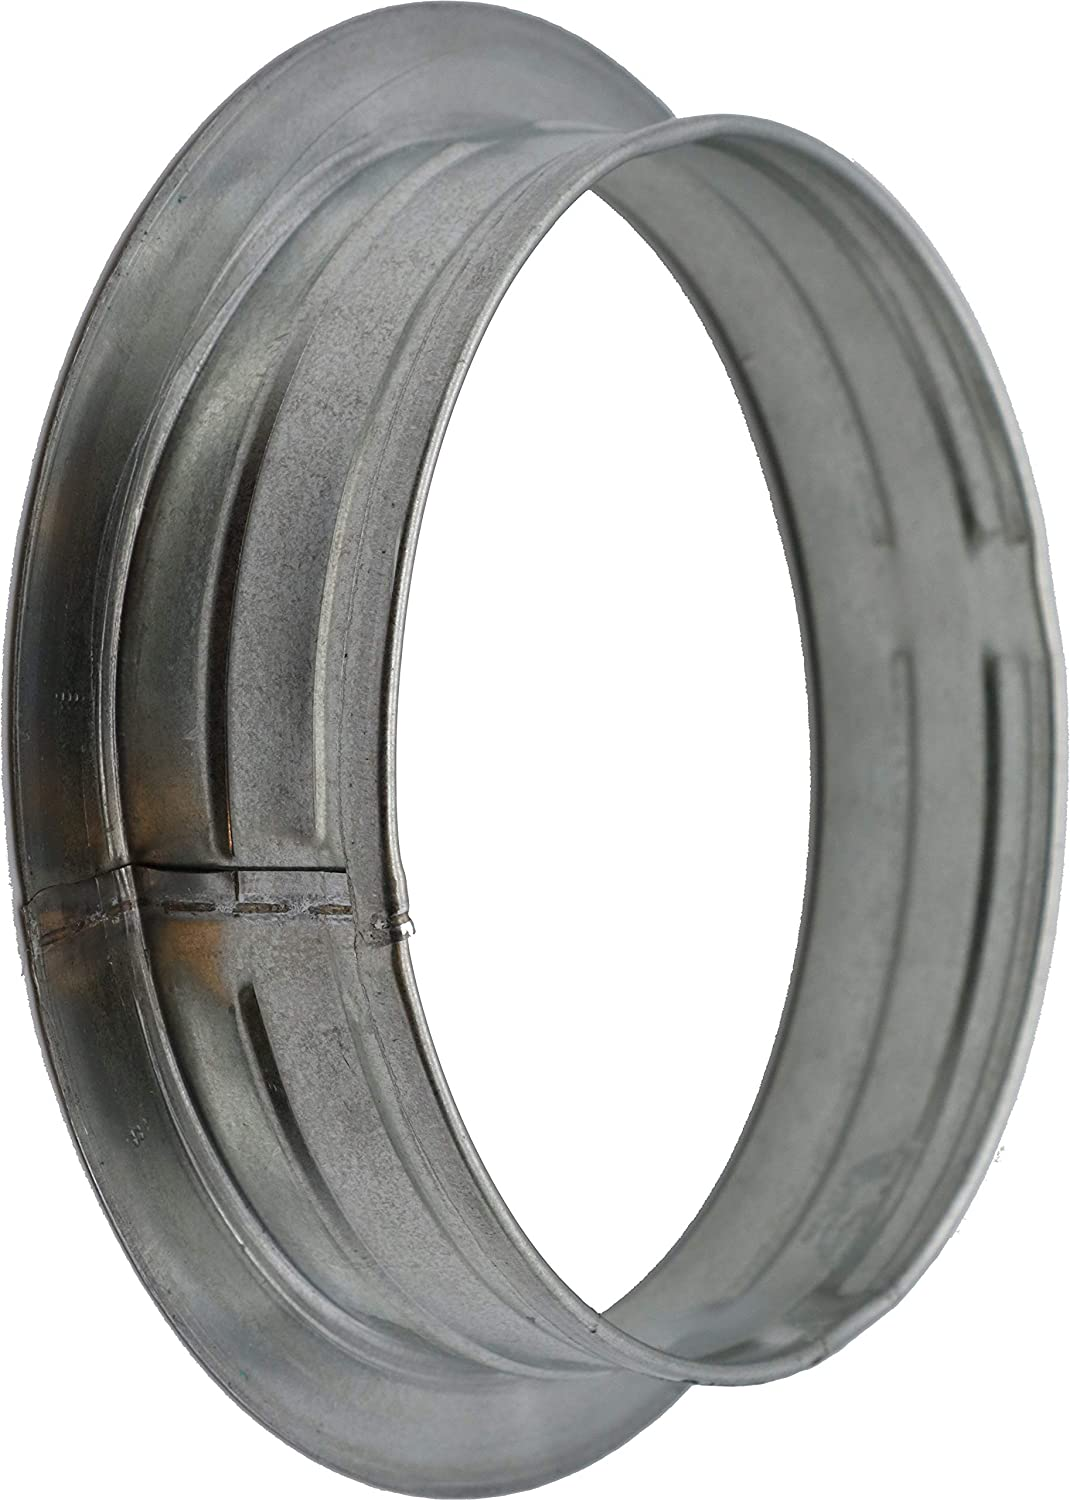 Duct Collar Air Tight -for Connecting Flex Ducting (6'' Inch)